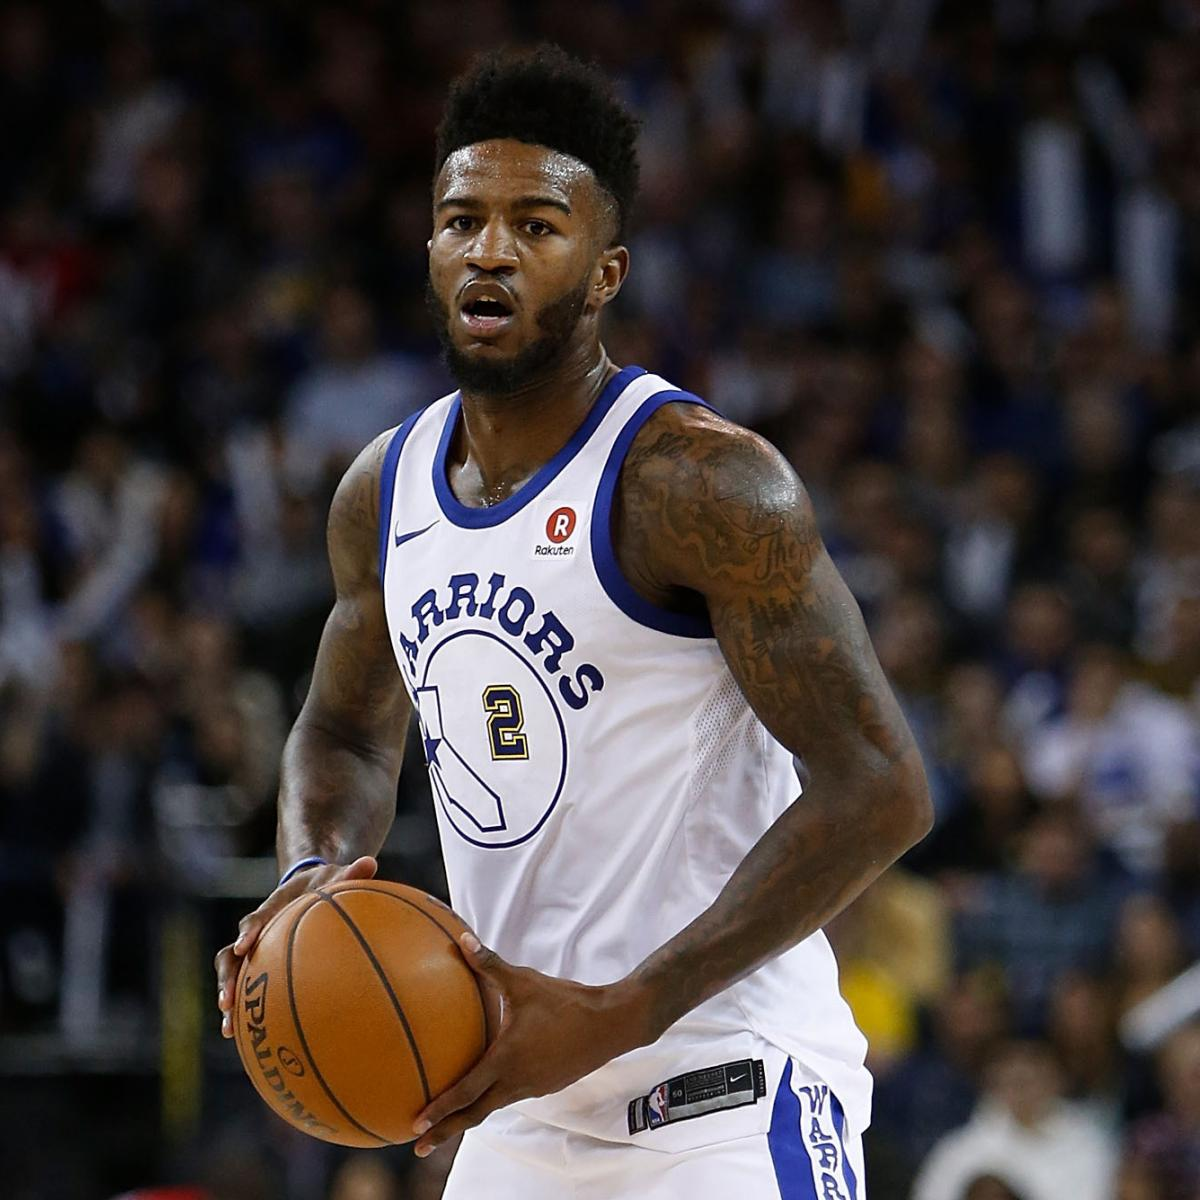 Warriors Vs Nets Full Game Highlights: Jordan Bell Exits Vs. Nets With Ankle Injury